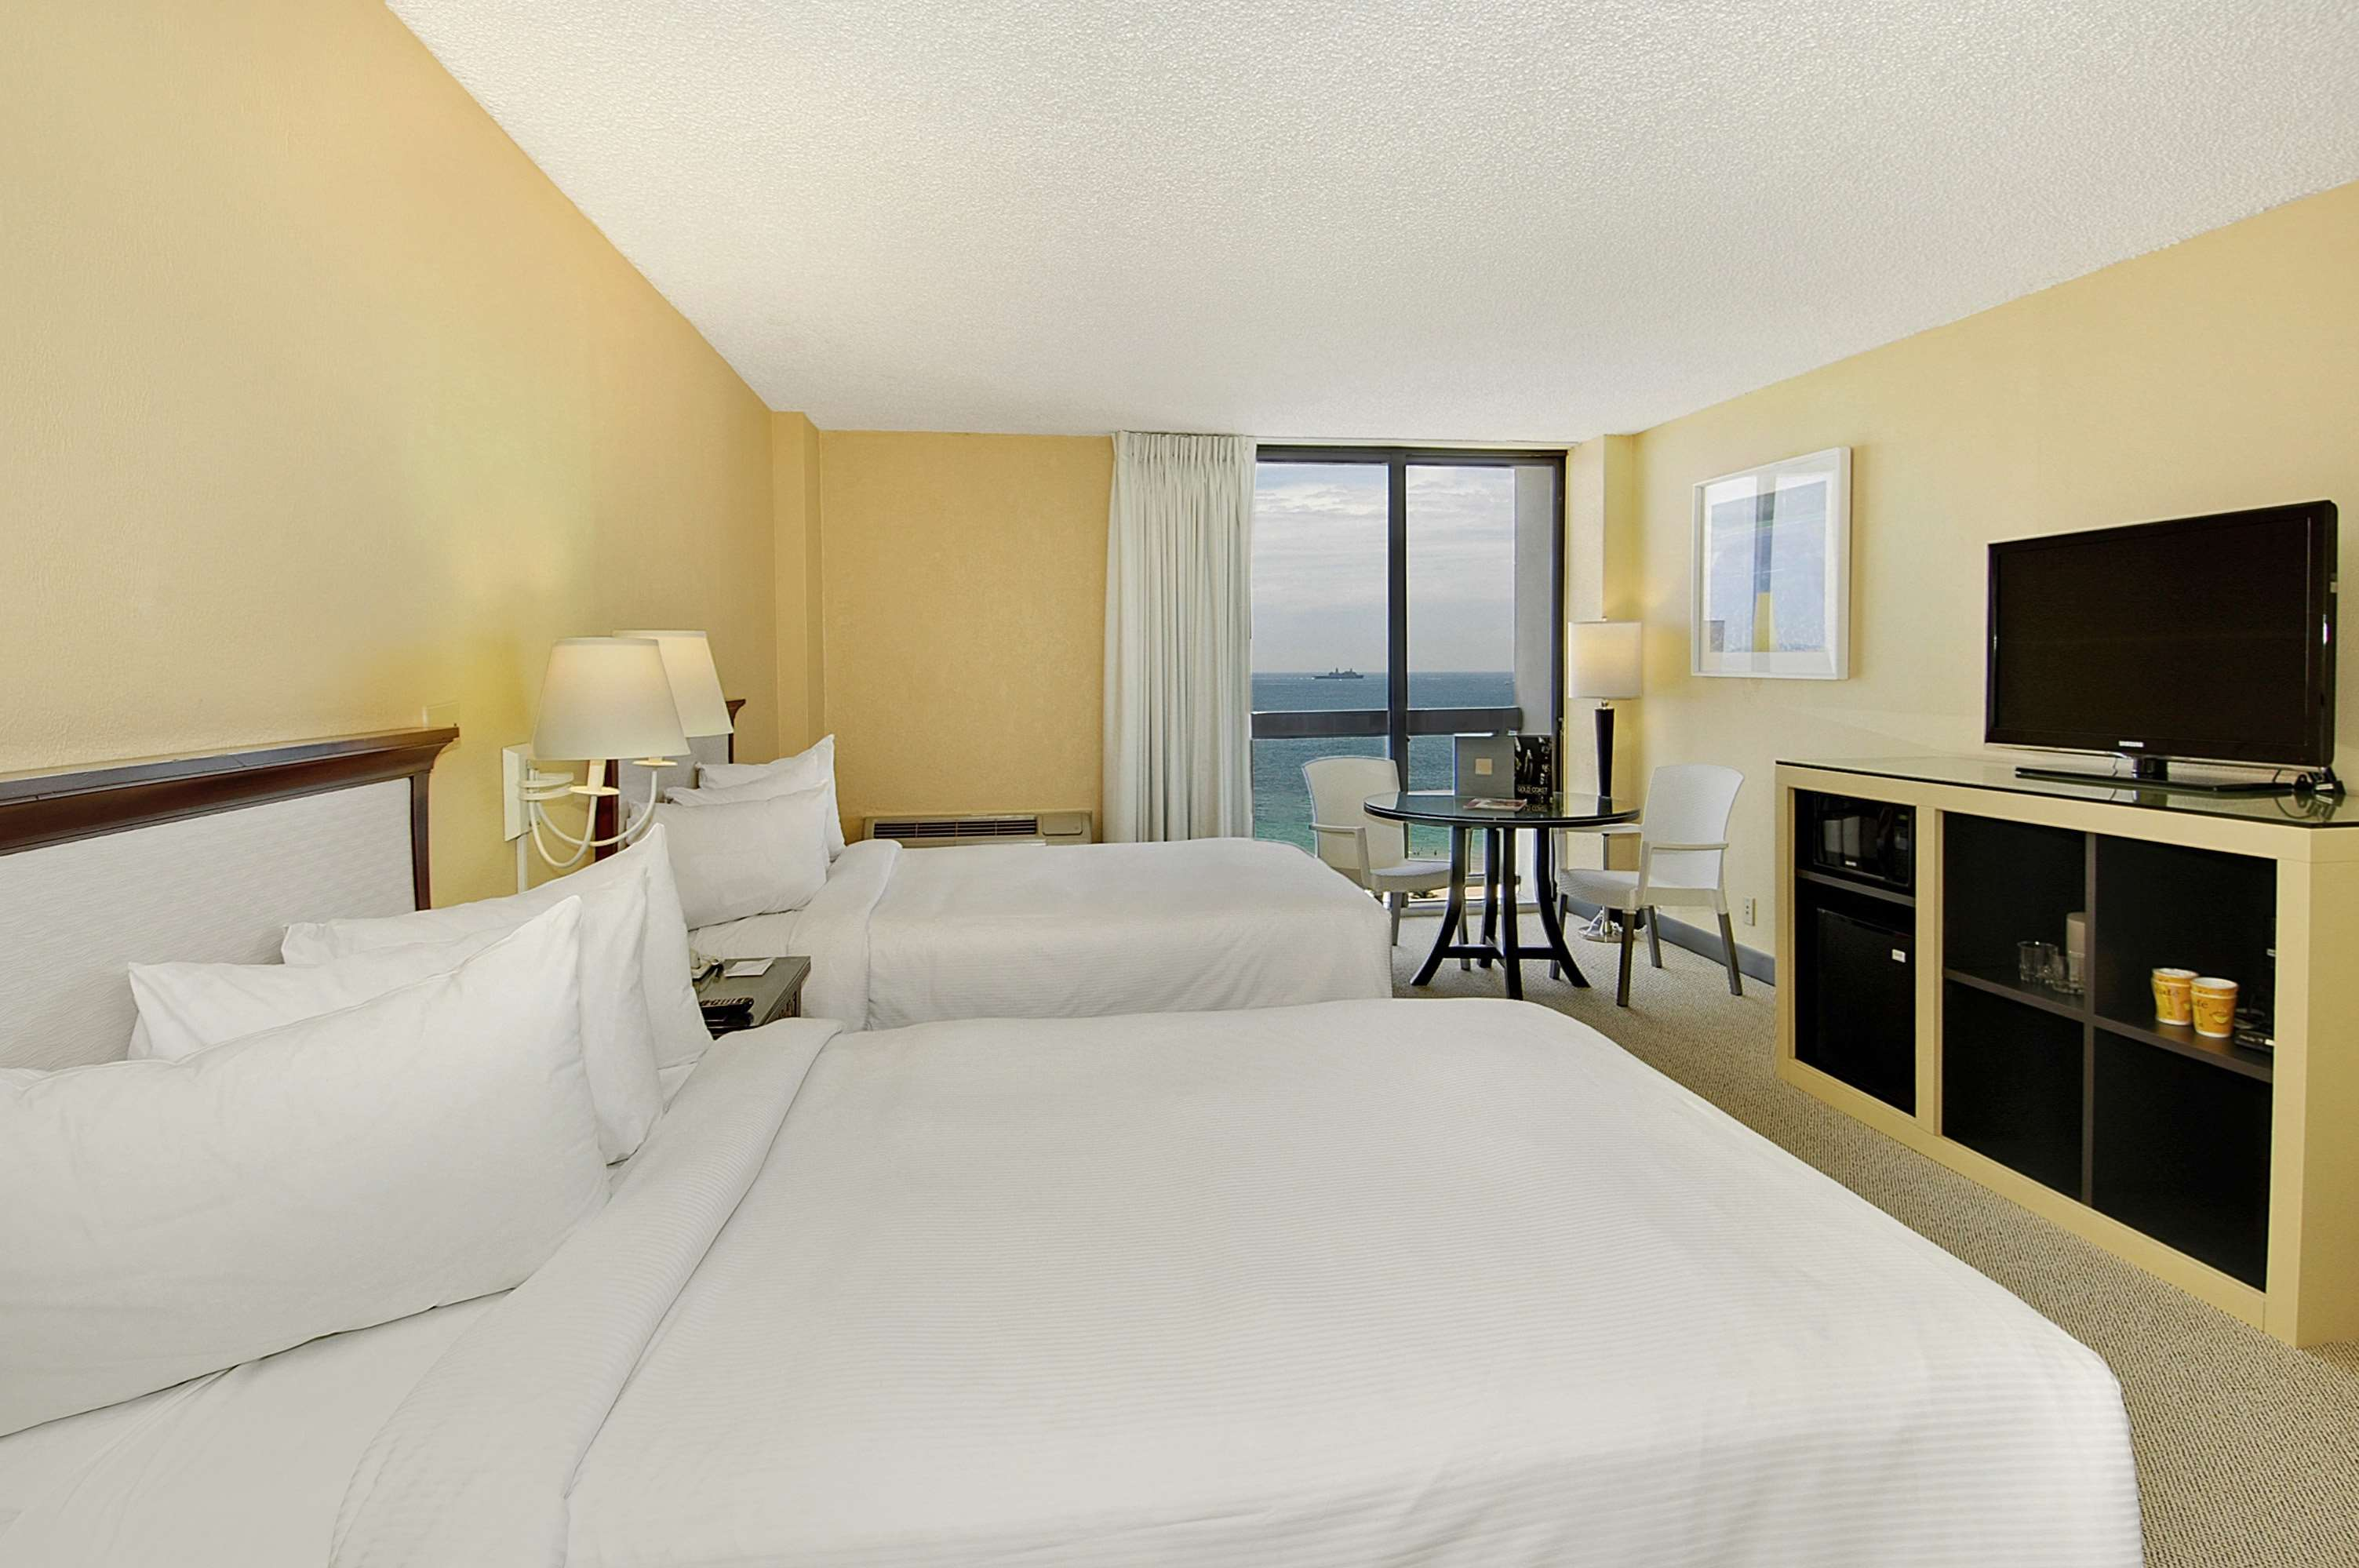 Bahia Mar Fort Lauderdale Beach - a DoubleTree by Hilton Hotel in Fort Lauderdale, FL, photo #26